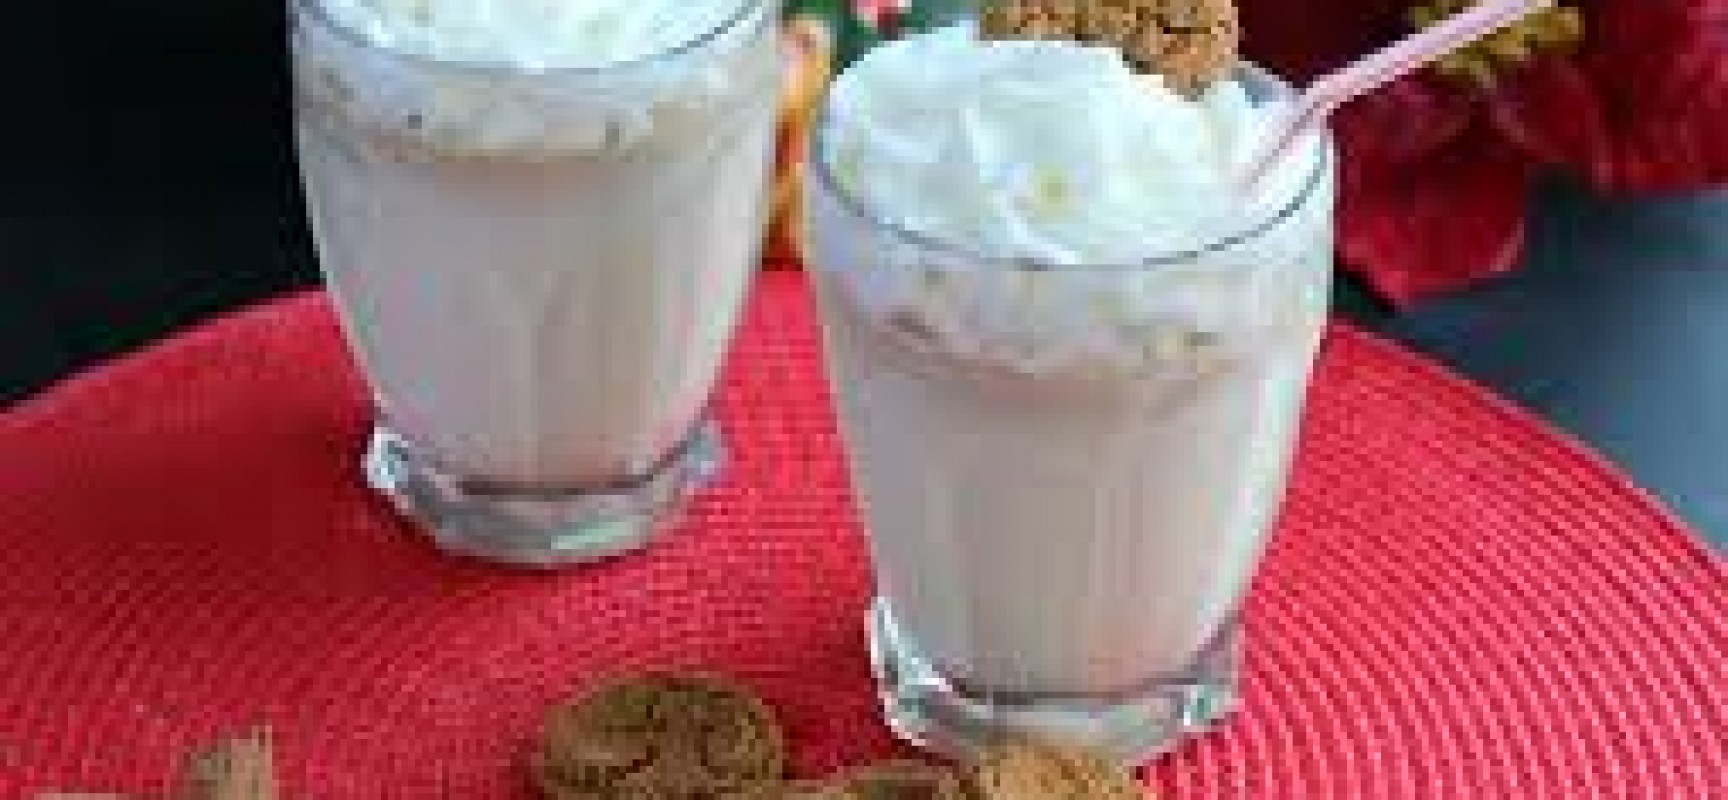 Milkshakes! 5 interesting recipes to follow!